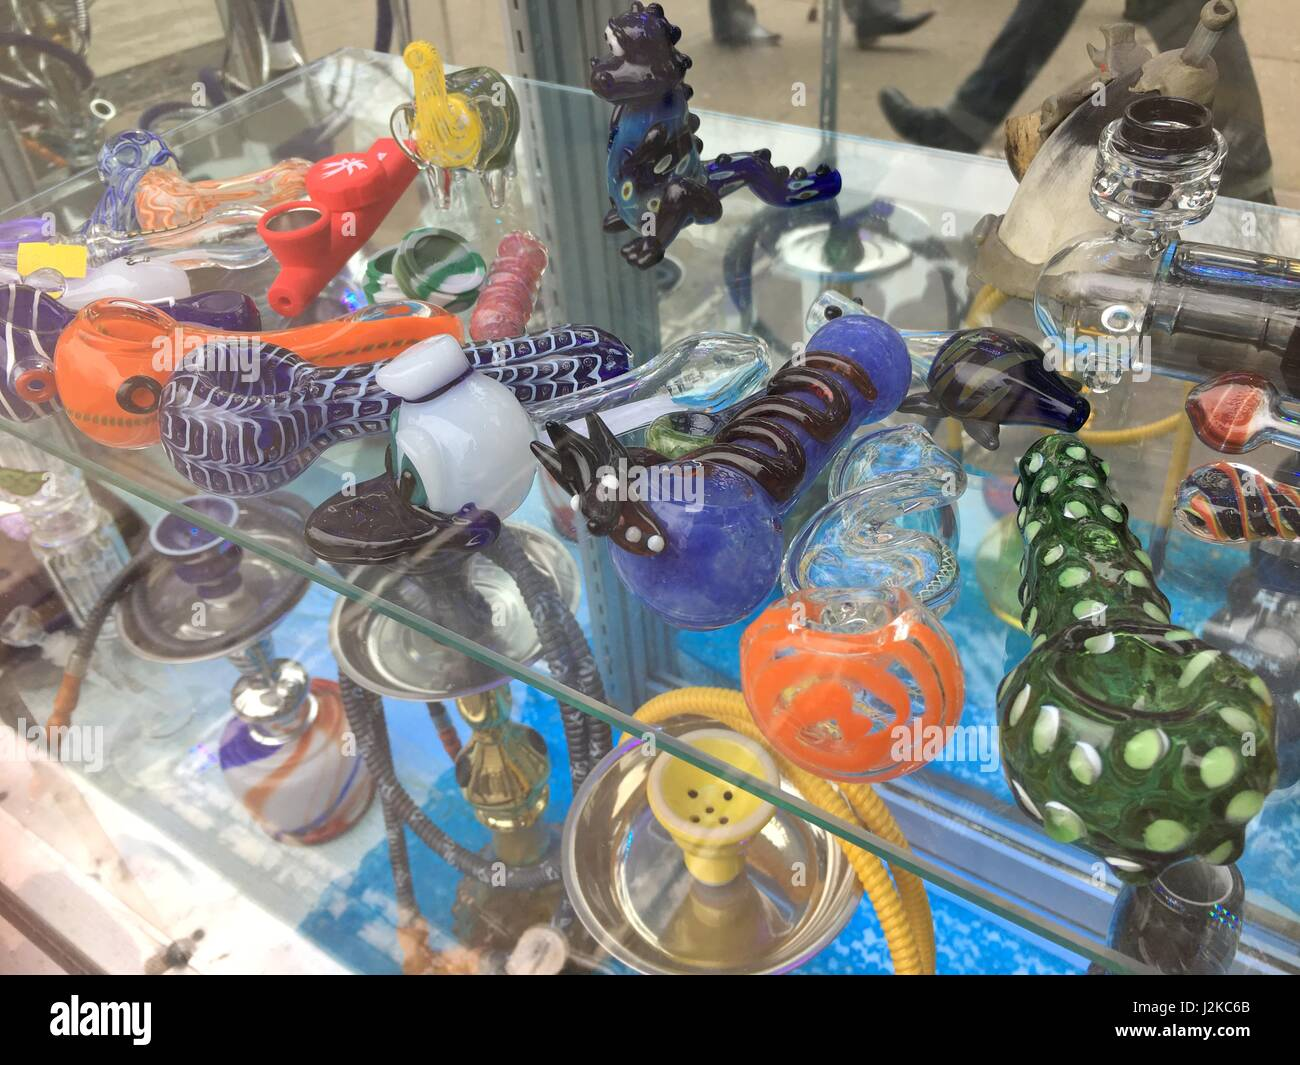 Glass bowls or bongs to smoke marijuana in multiple colors and designs. - Stock Image